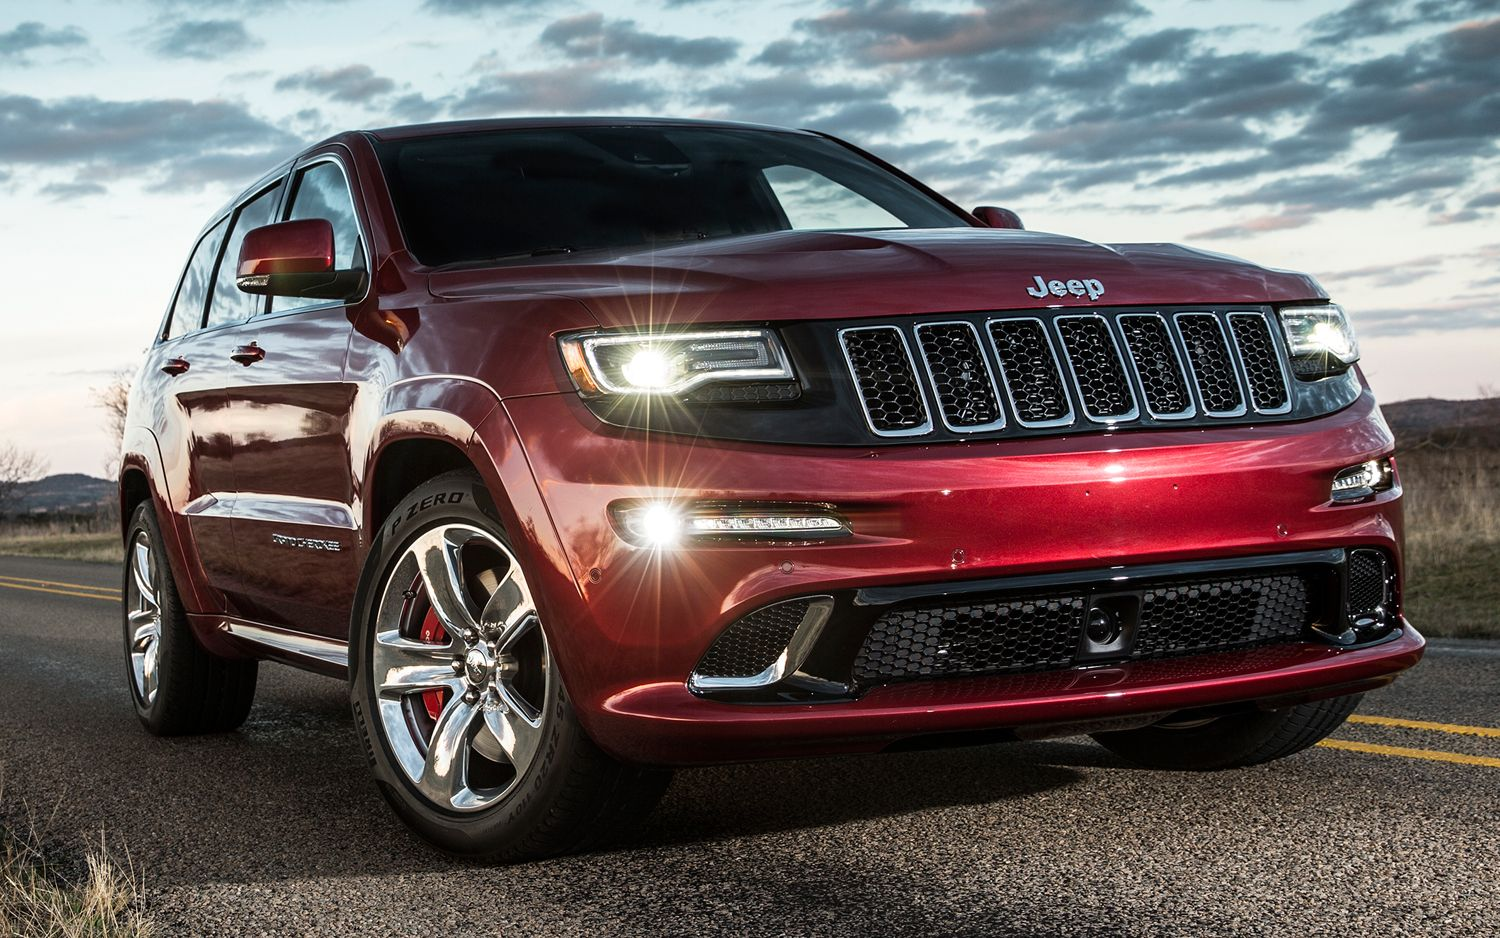 The magnificent jeep grand cherokee 2014 jeep grand cherokee is one of the most magnificent cars that you can see till now it is really an elegant car